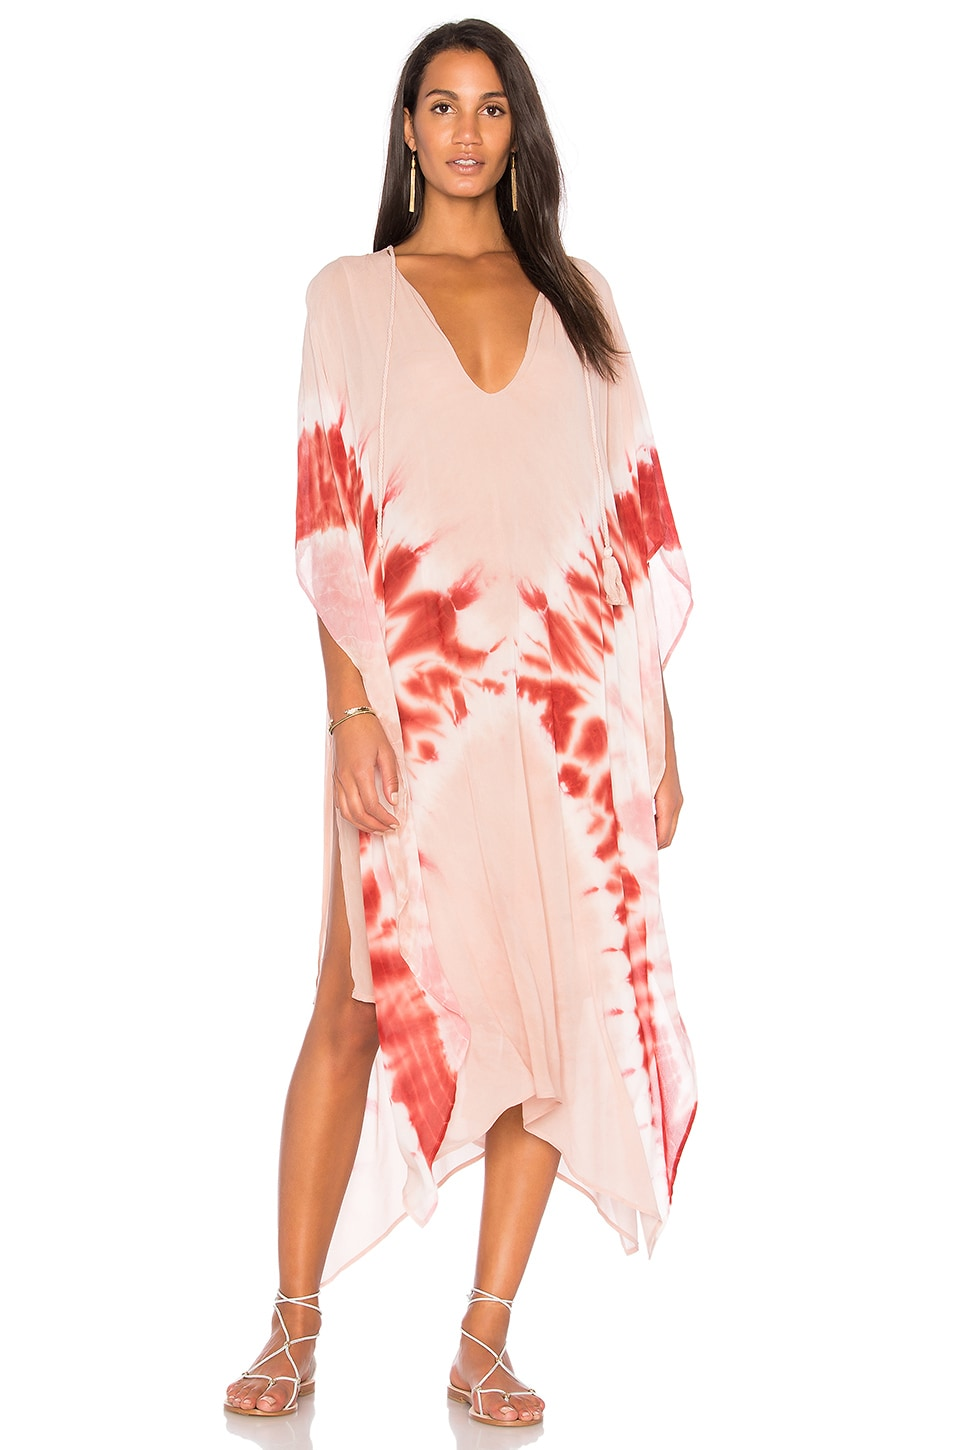 Coronado Cover Up by Young, Fabulous & Broke